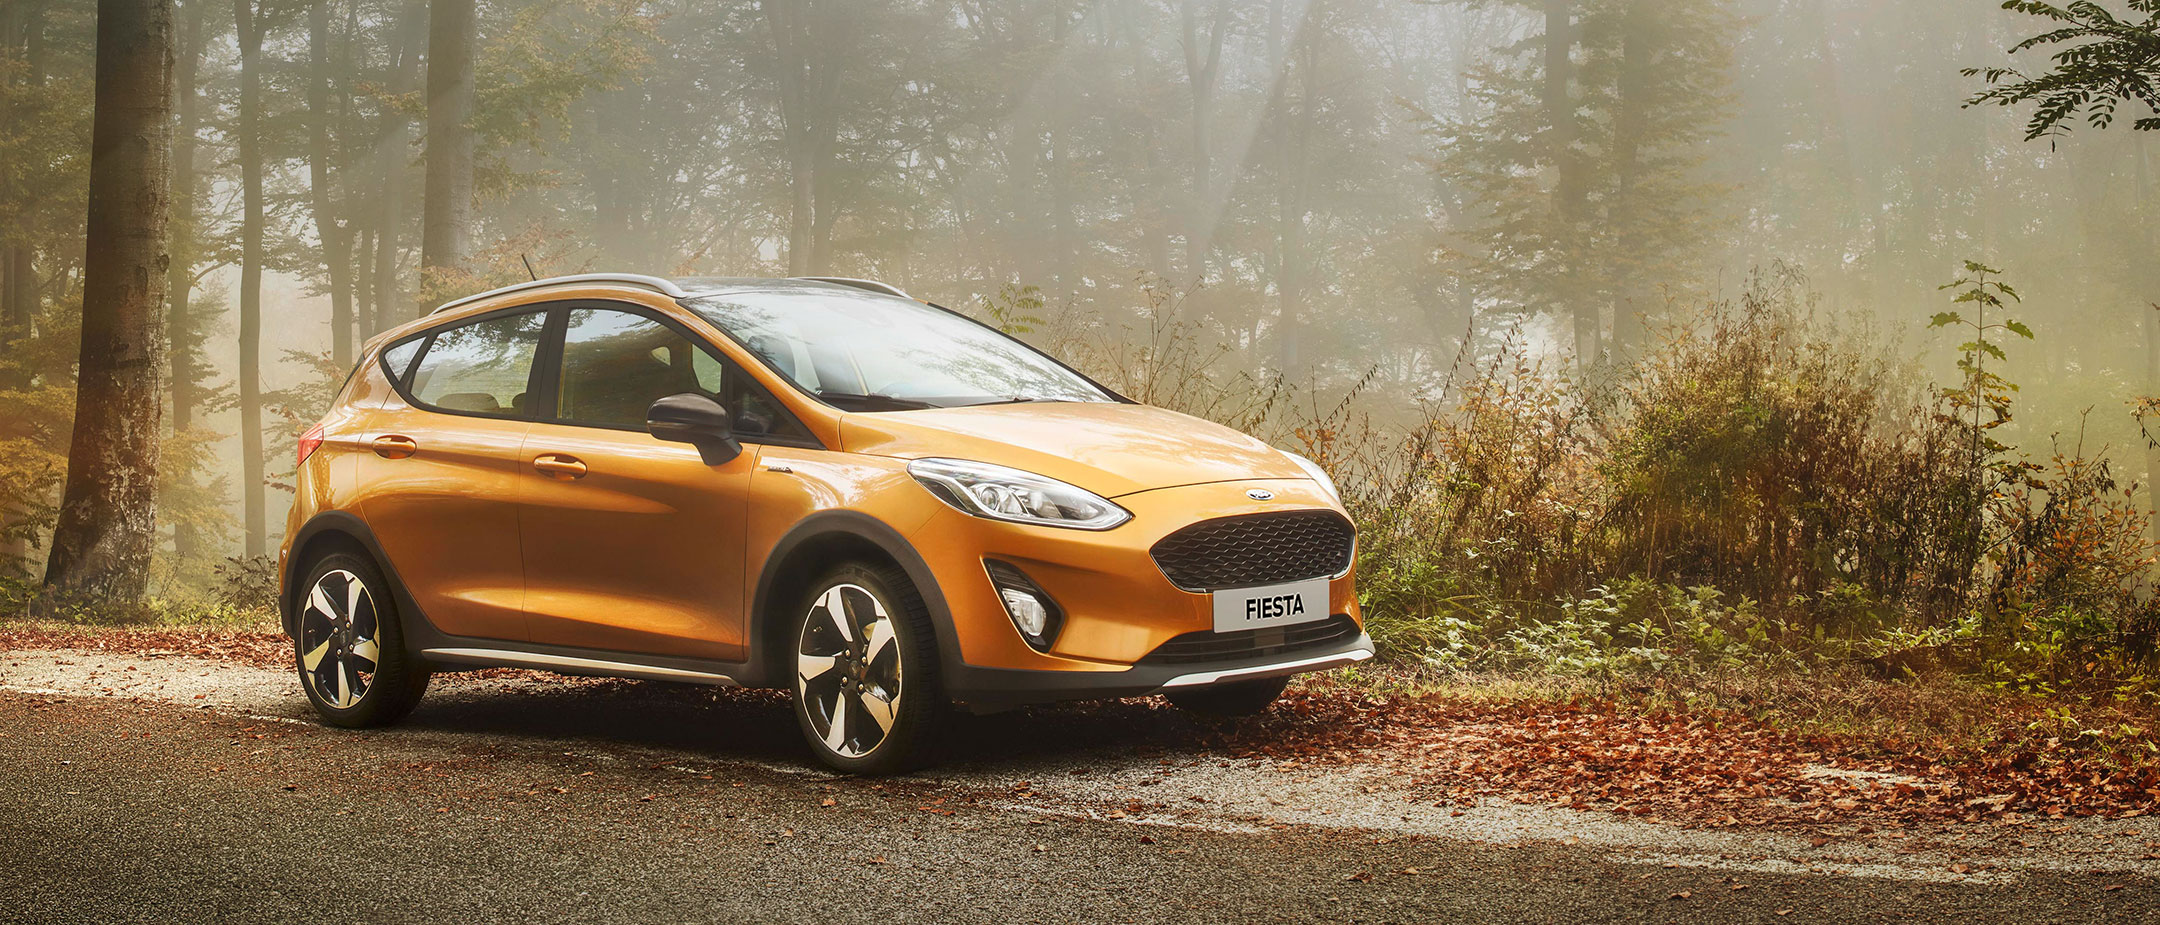 Golden Ford Fiesta Active in the forest side view